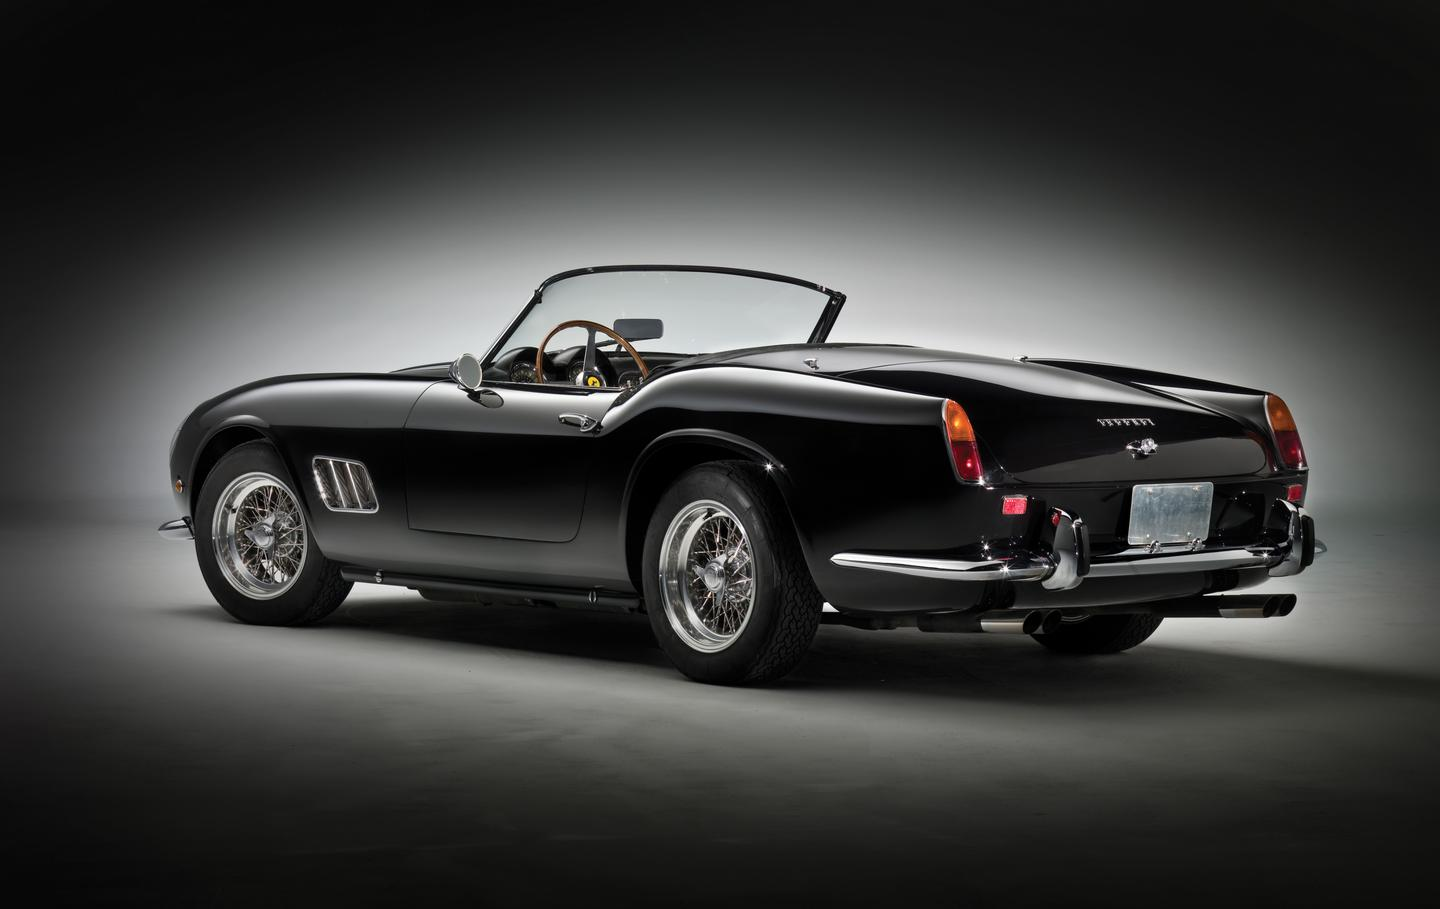 The first incarnation of the 250GT California Spider finished fifth outright in the 1959 24 Hours of ours of Le Mans. Hours of Le Mans. In 1961, Ferrari shortened the wheelbase to offer razor-sharp steering, replaced the drums with disc brakes, and the 276 hp three-litre SWB California was born. This car is one of the best known of the limited edition SWB Californias.